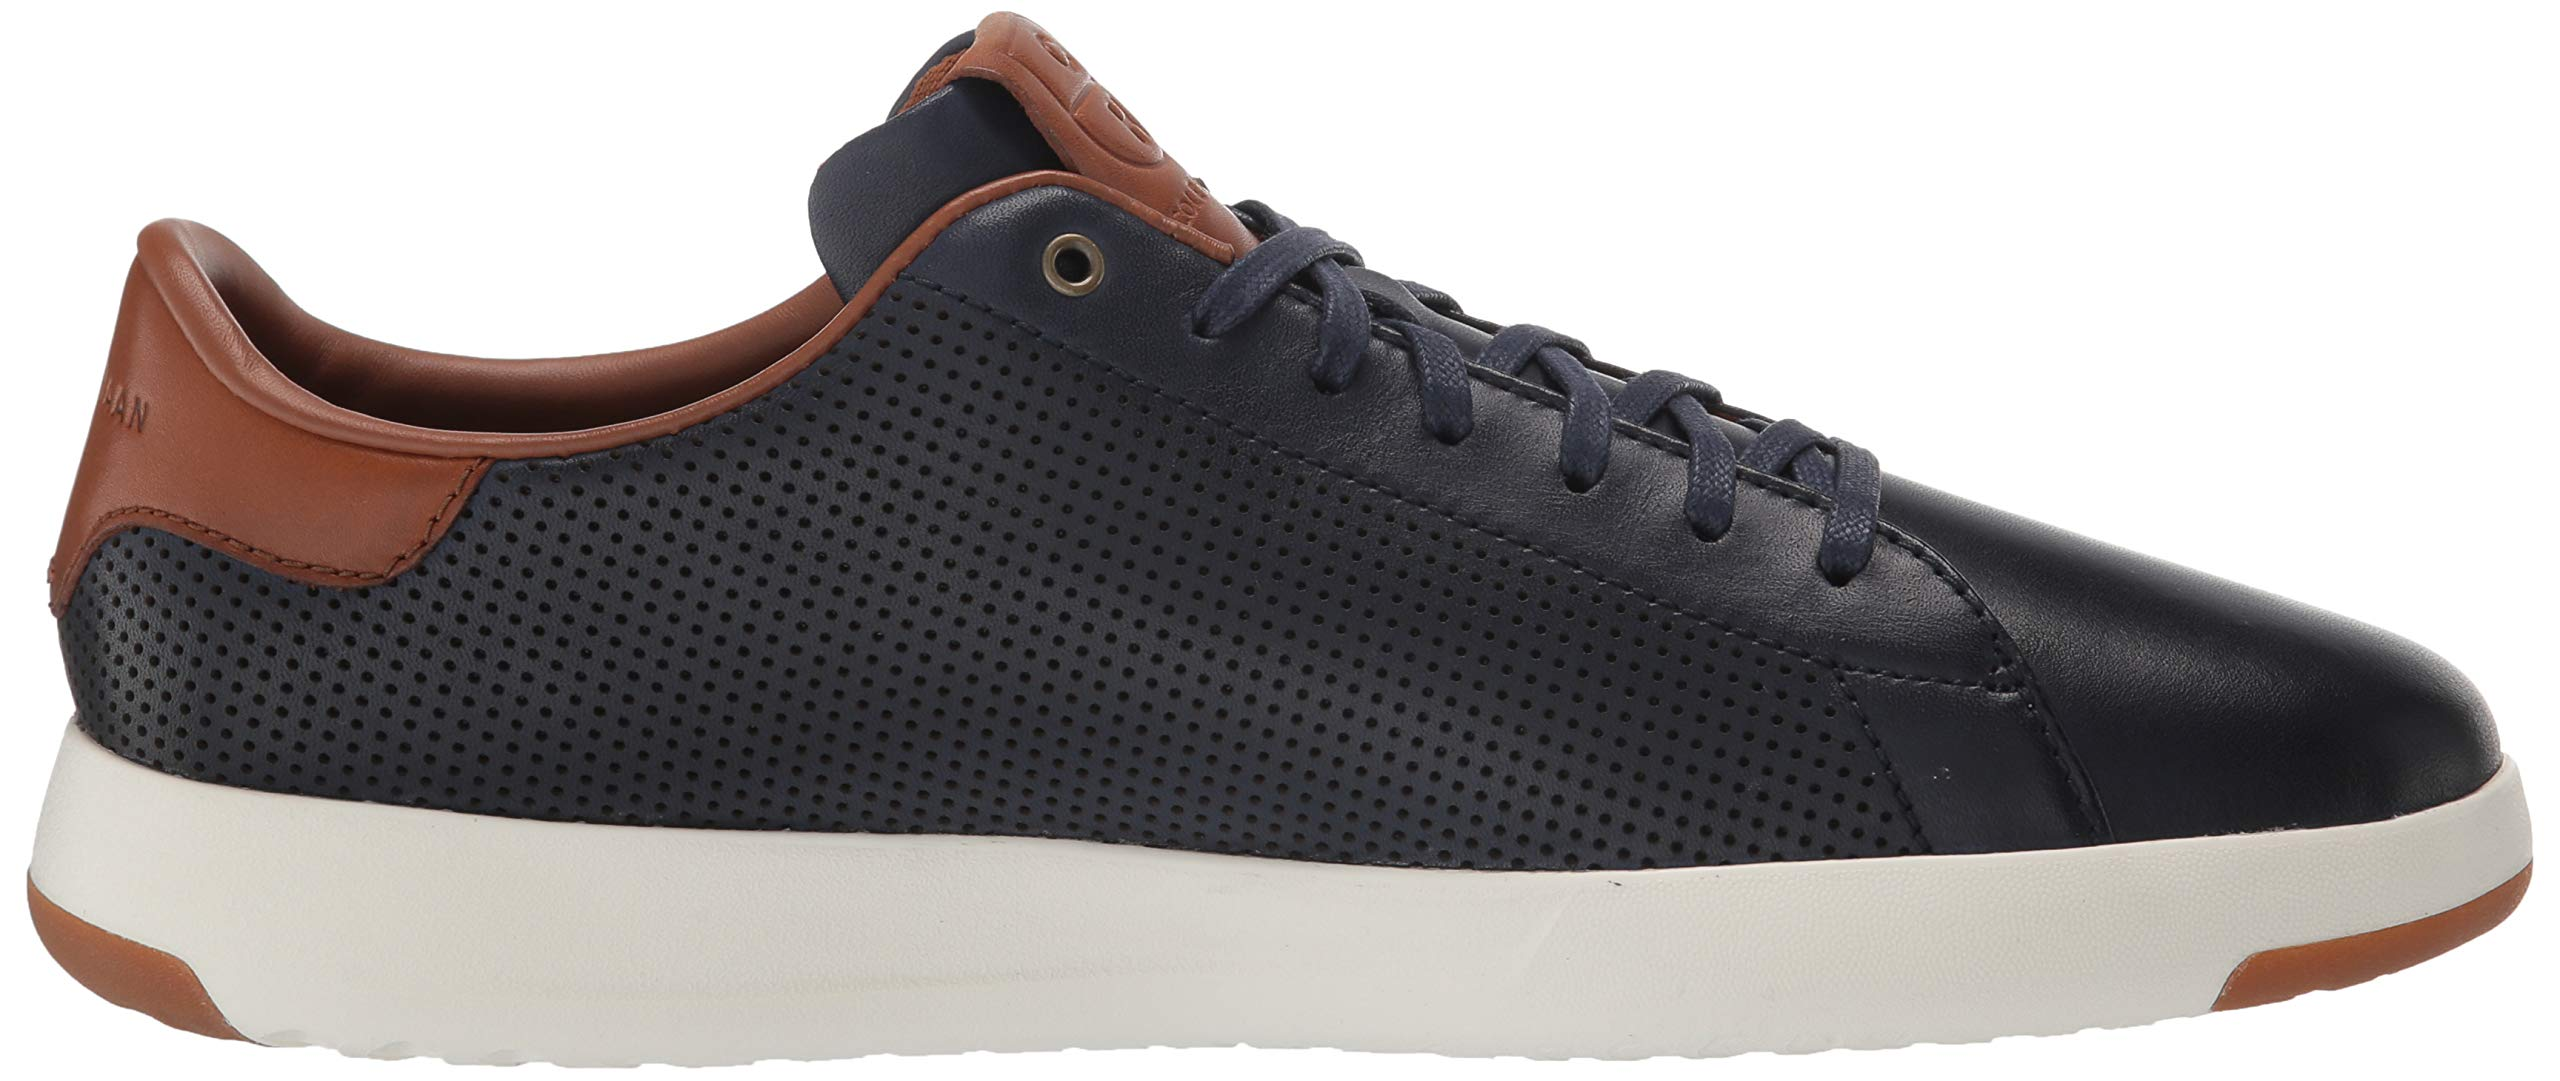 Cole Haan Mens Grandpro Tennis Sneaker 7 Navy Handstained Leather by Cole Haan (Image #7)